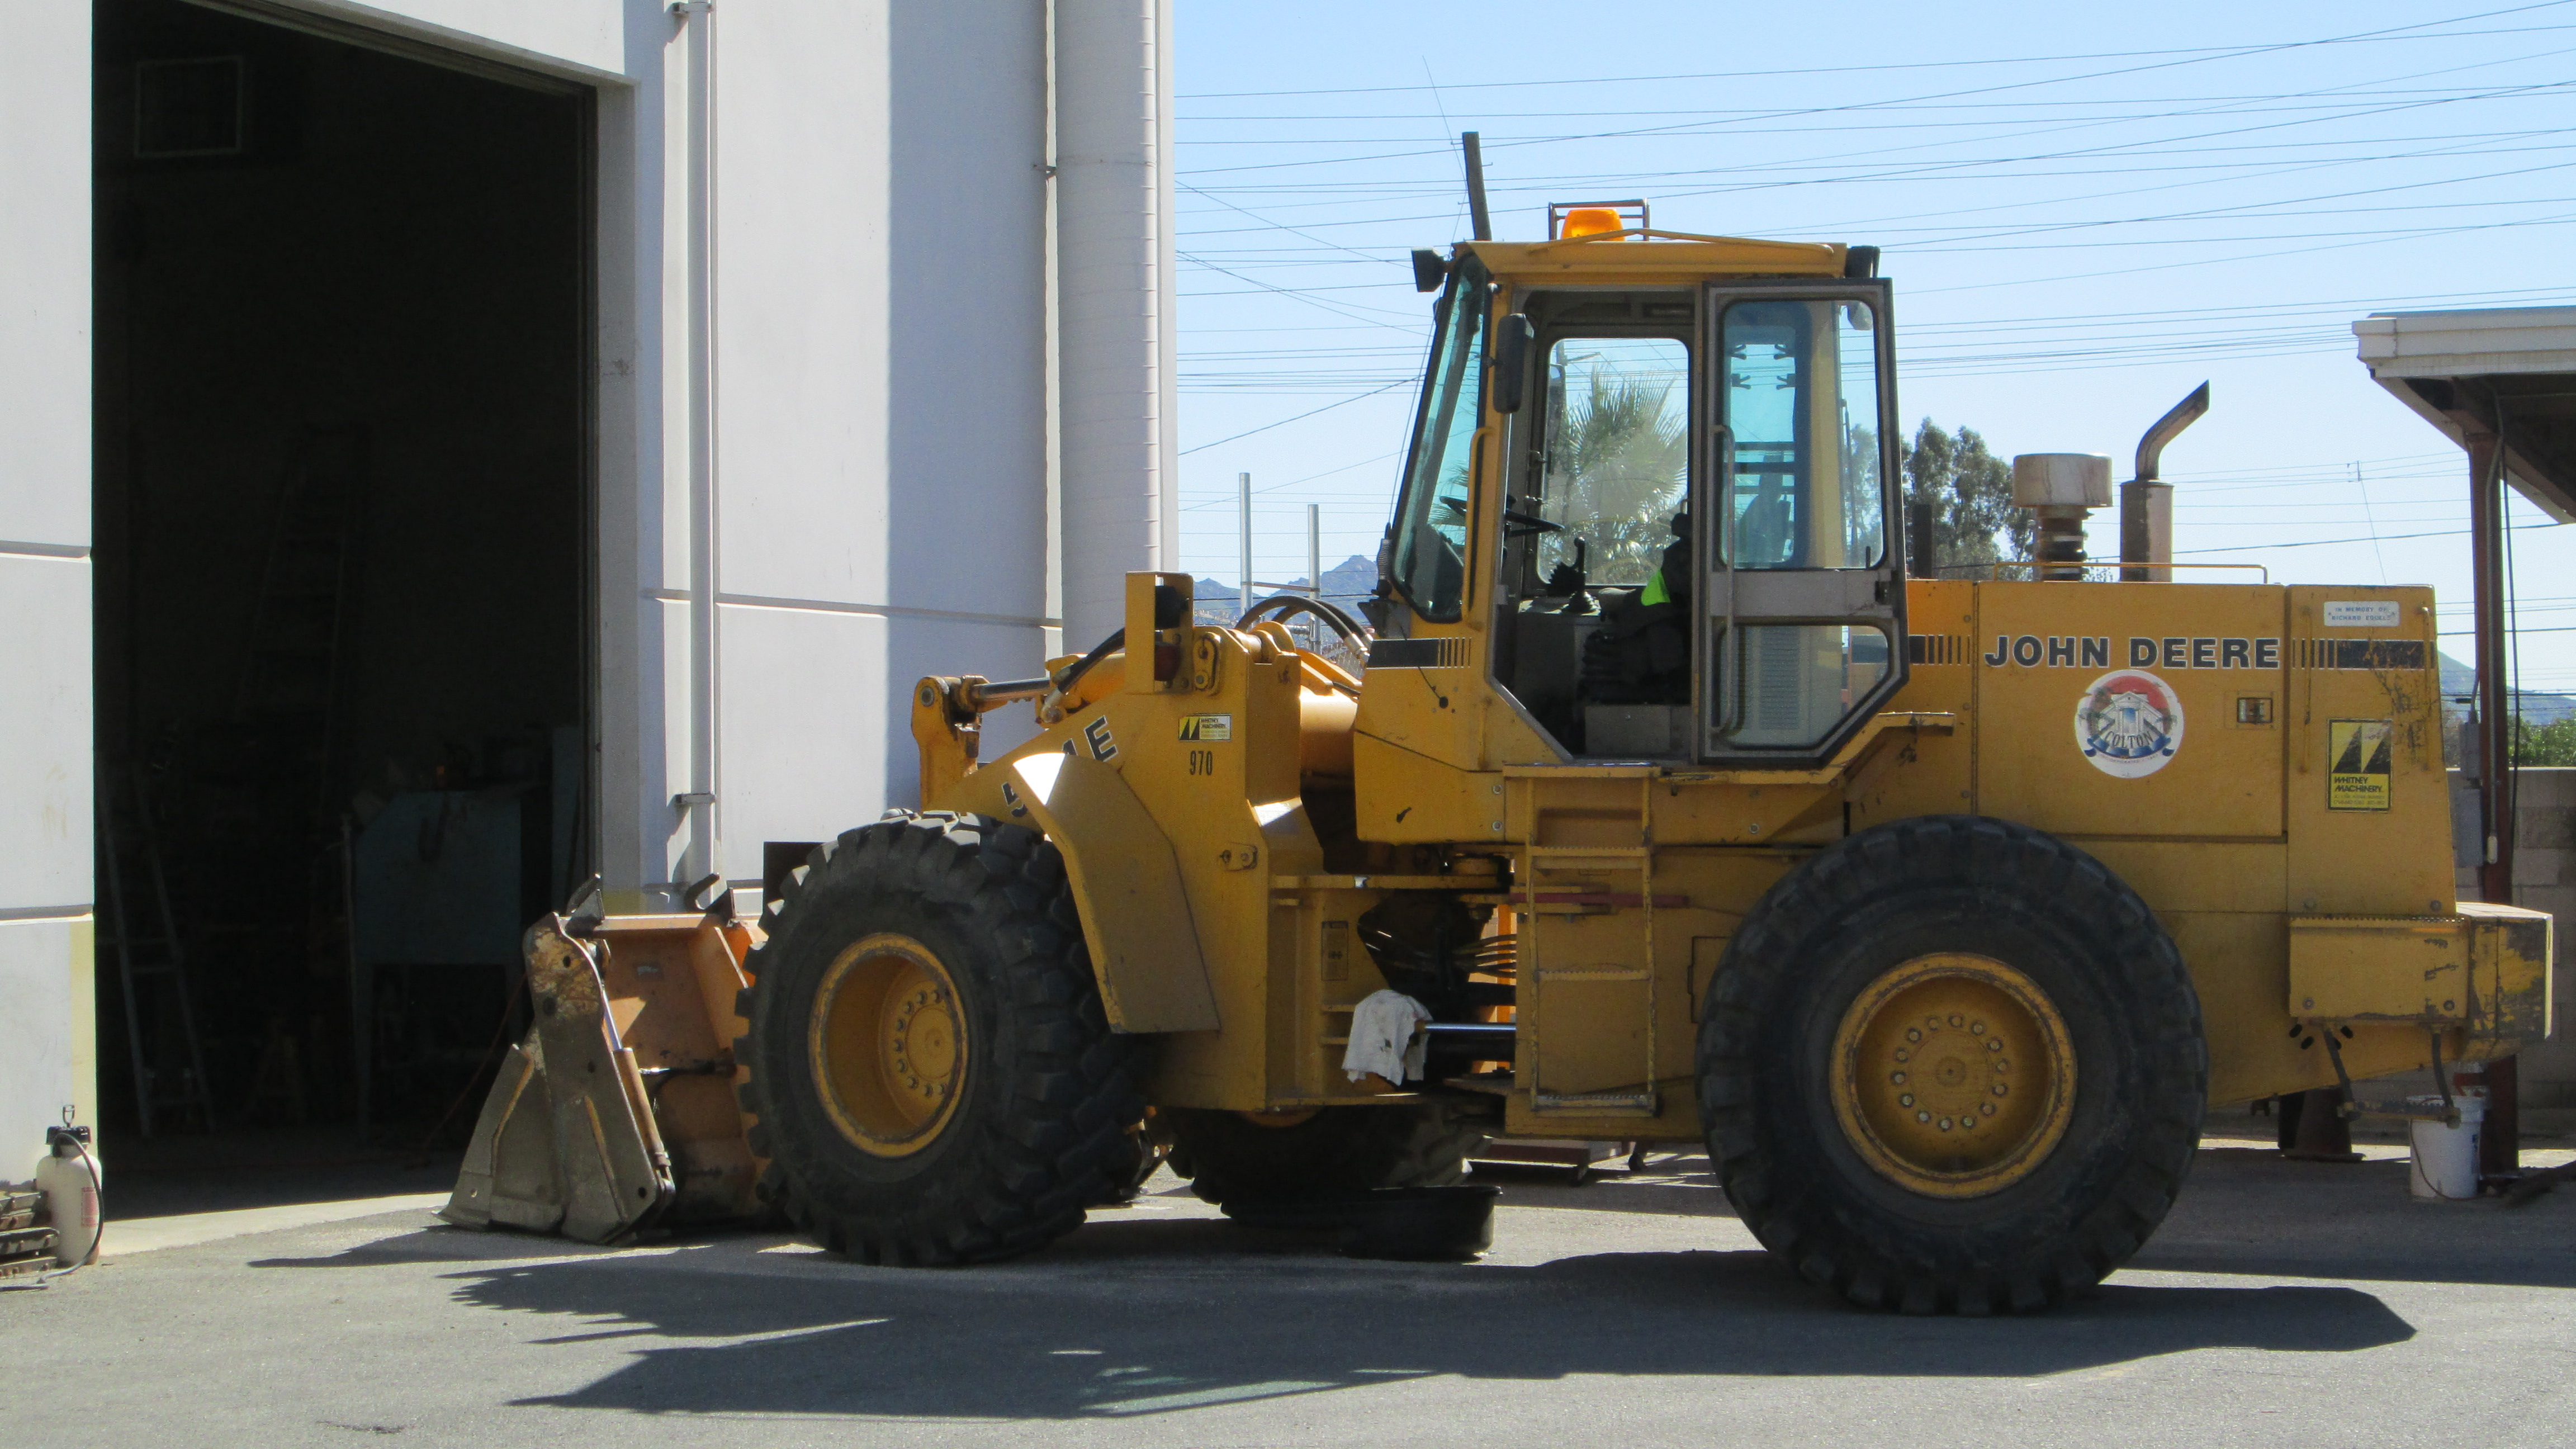 A large piece of construction equipment parked outside of a large garage facility